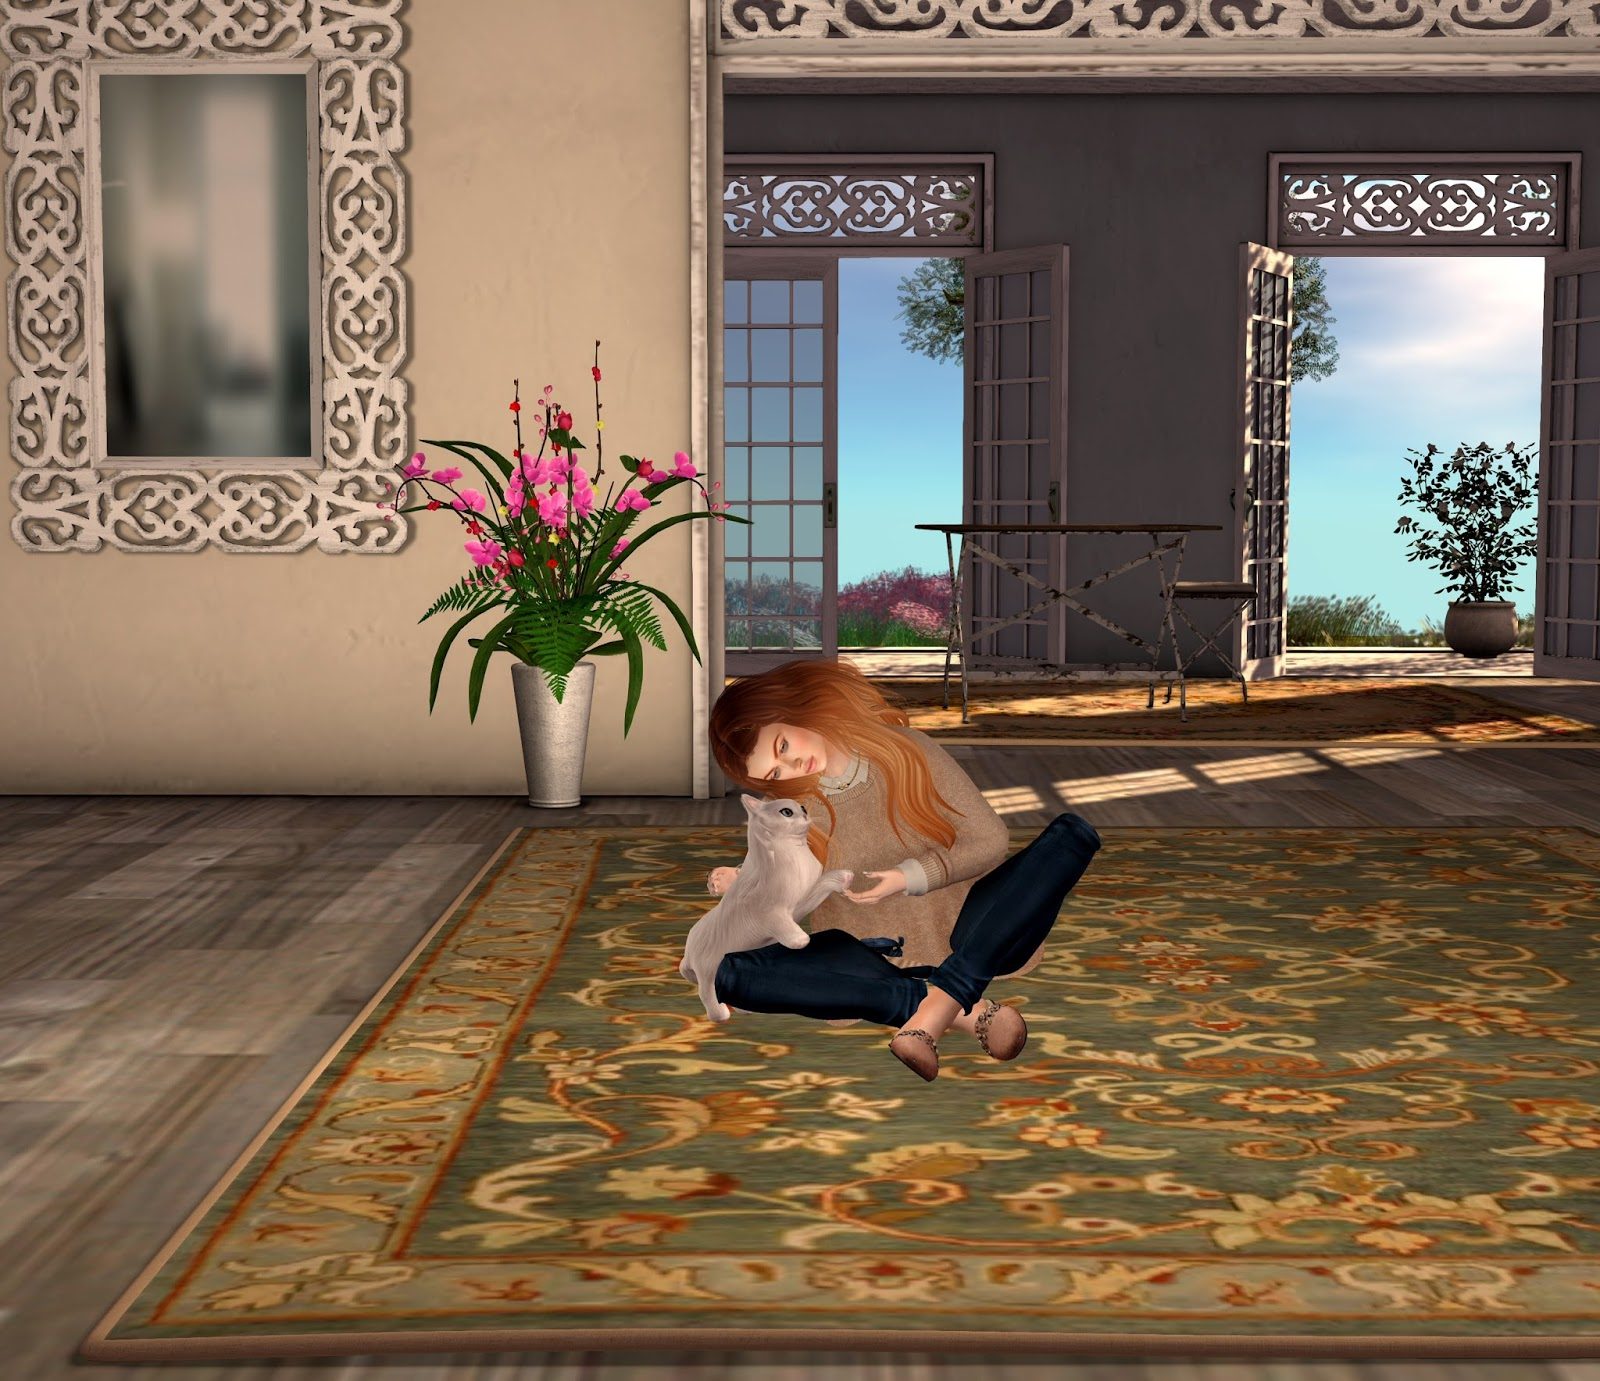 Perv My Style - Second Life Fashion Blog: Hot For Teacher